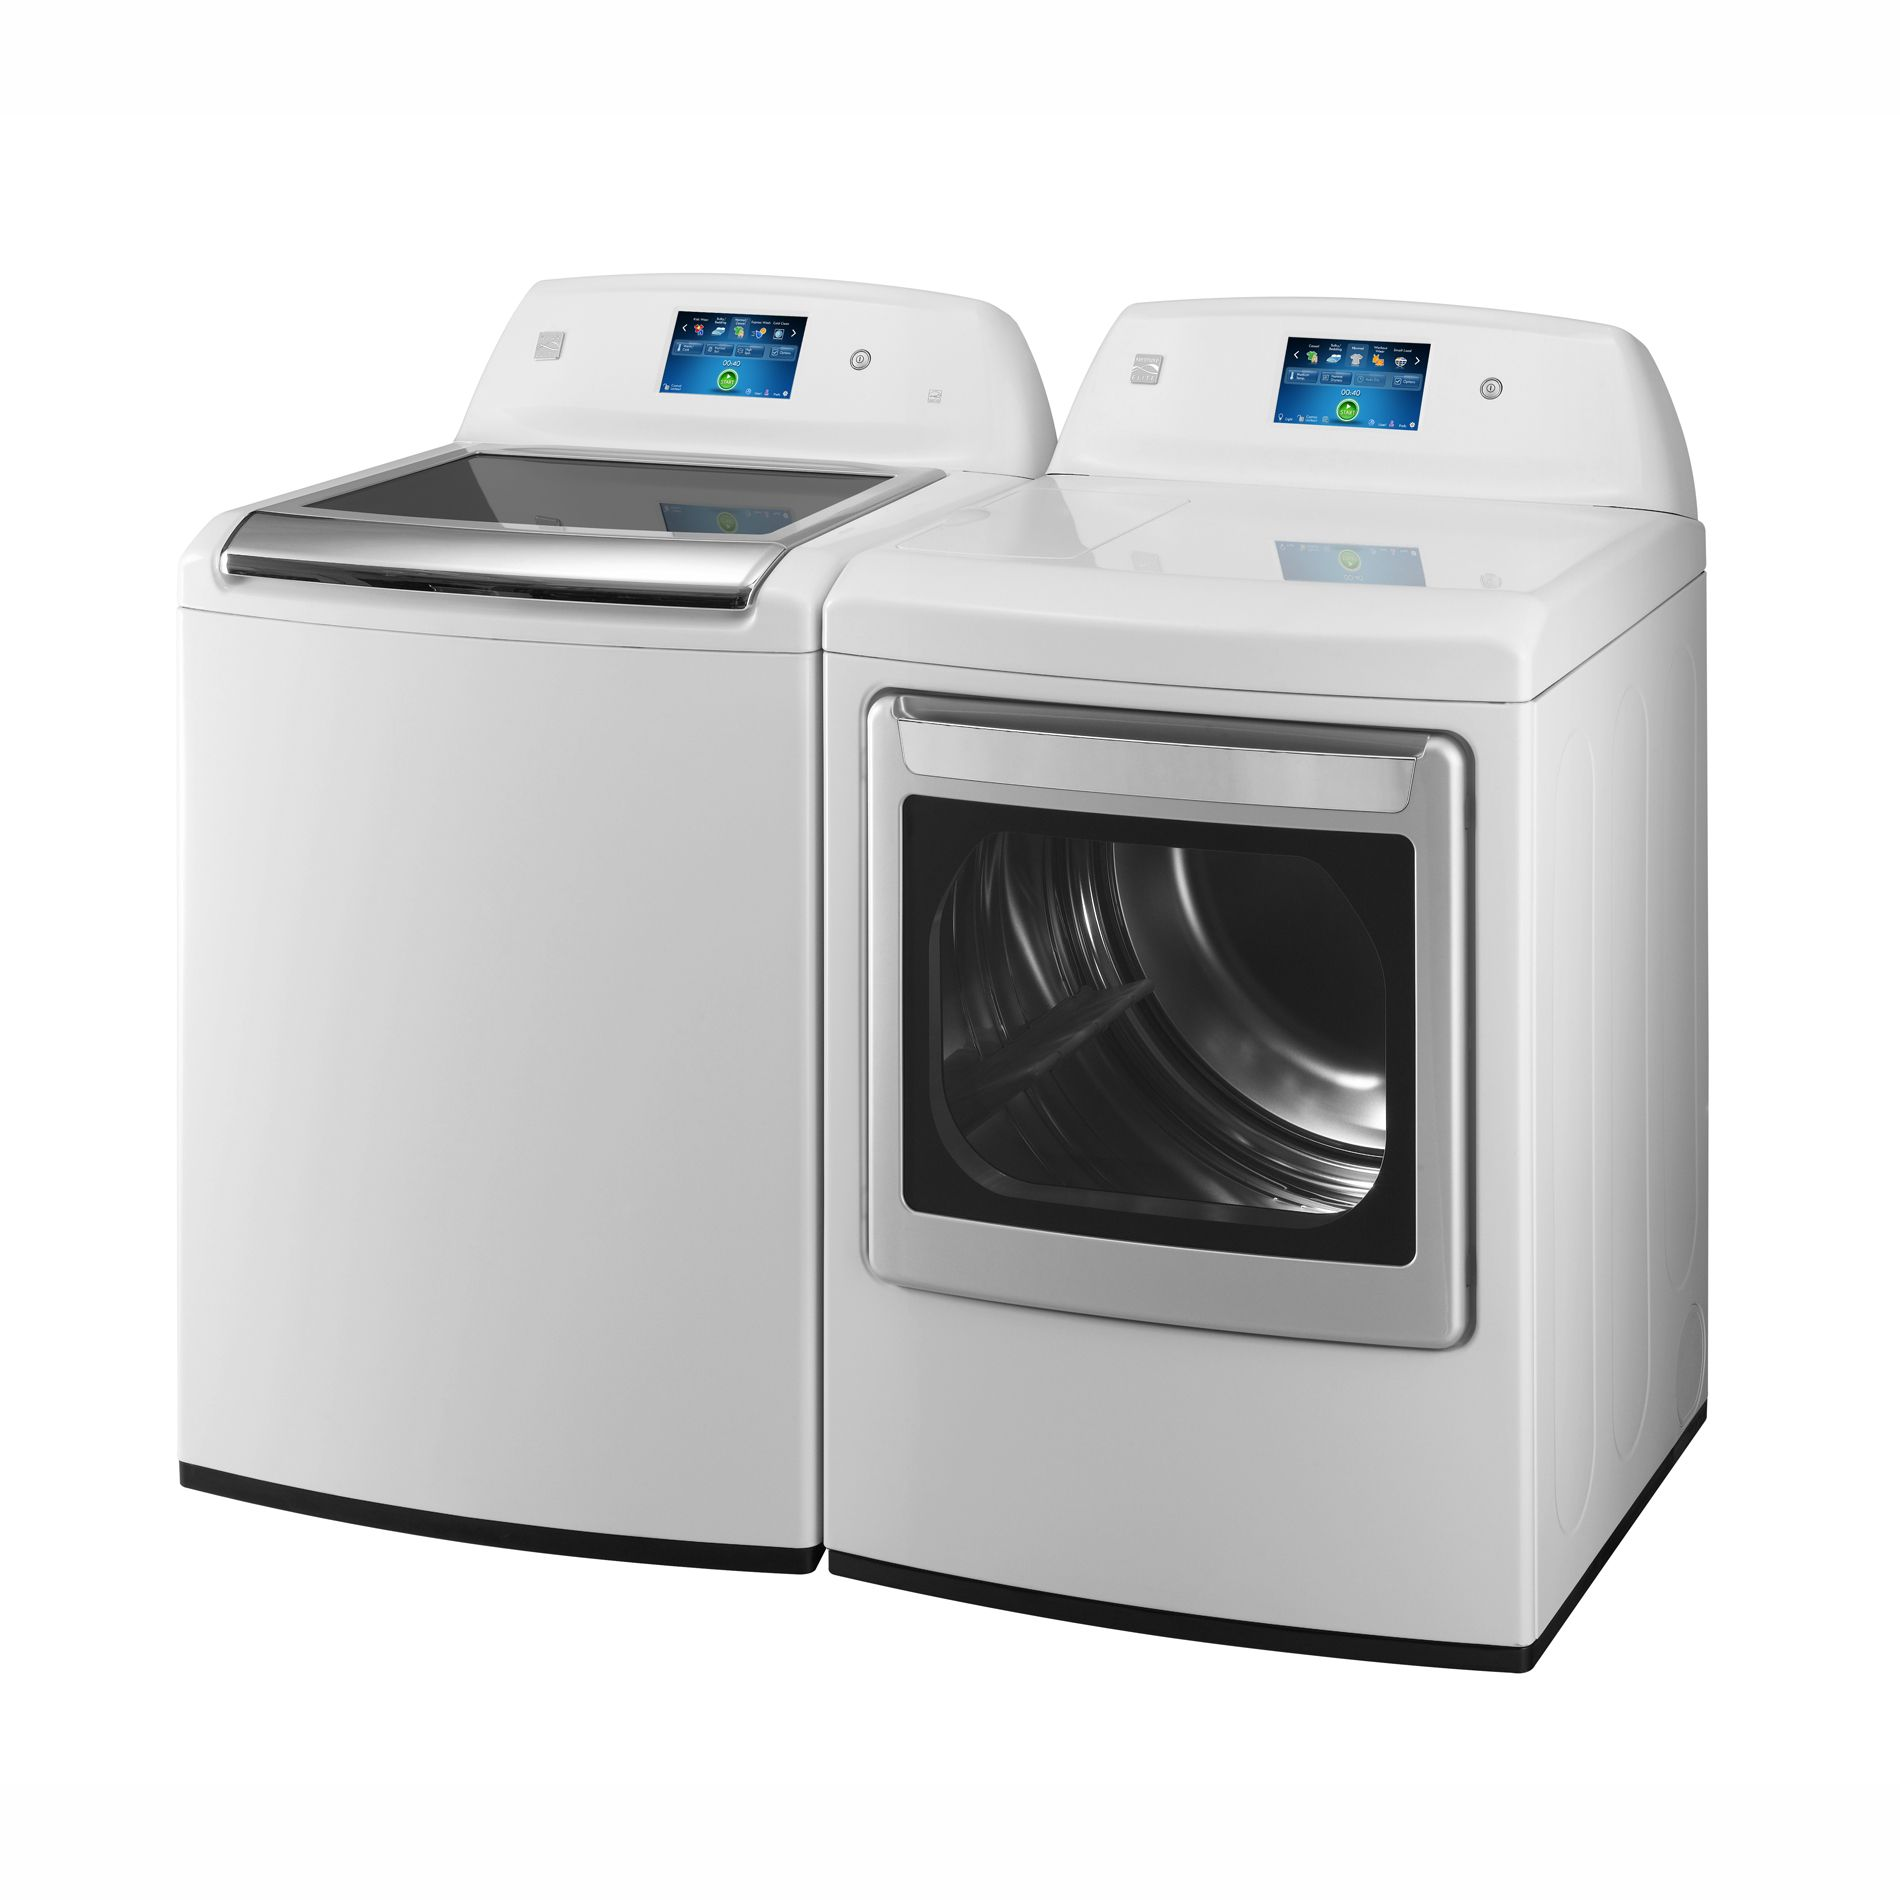 Kenmore Elite 7.3 cu. ft. Electric Steam Dryer w/ LCD ColorTouch Display - White